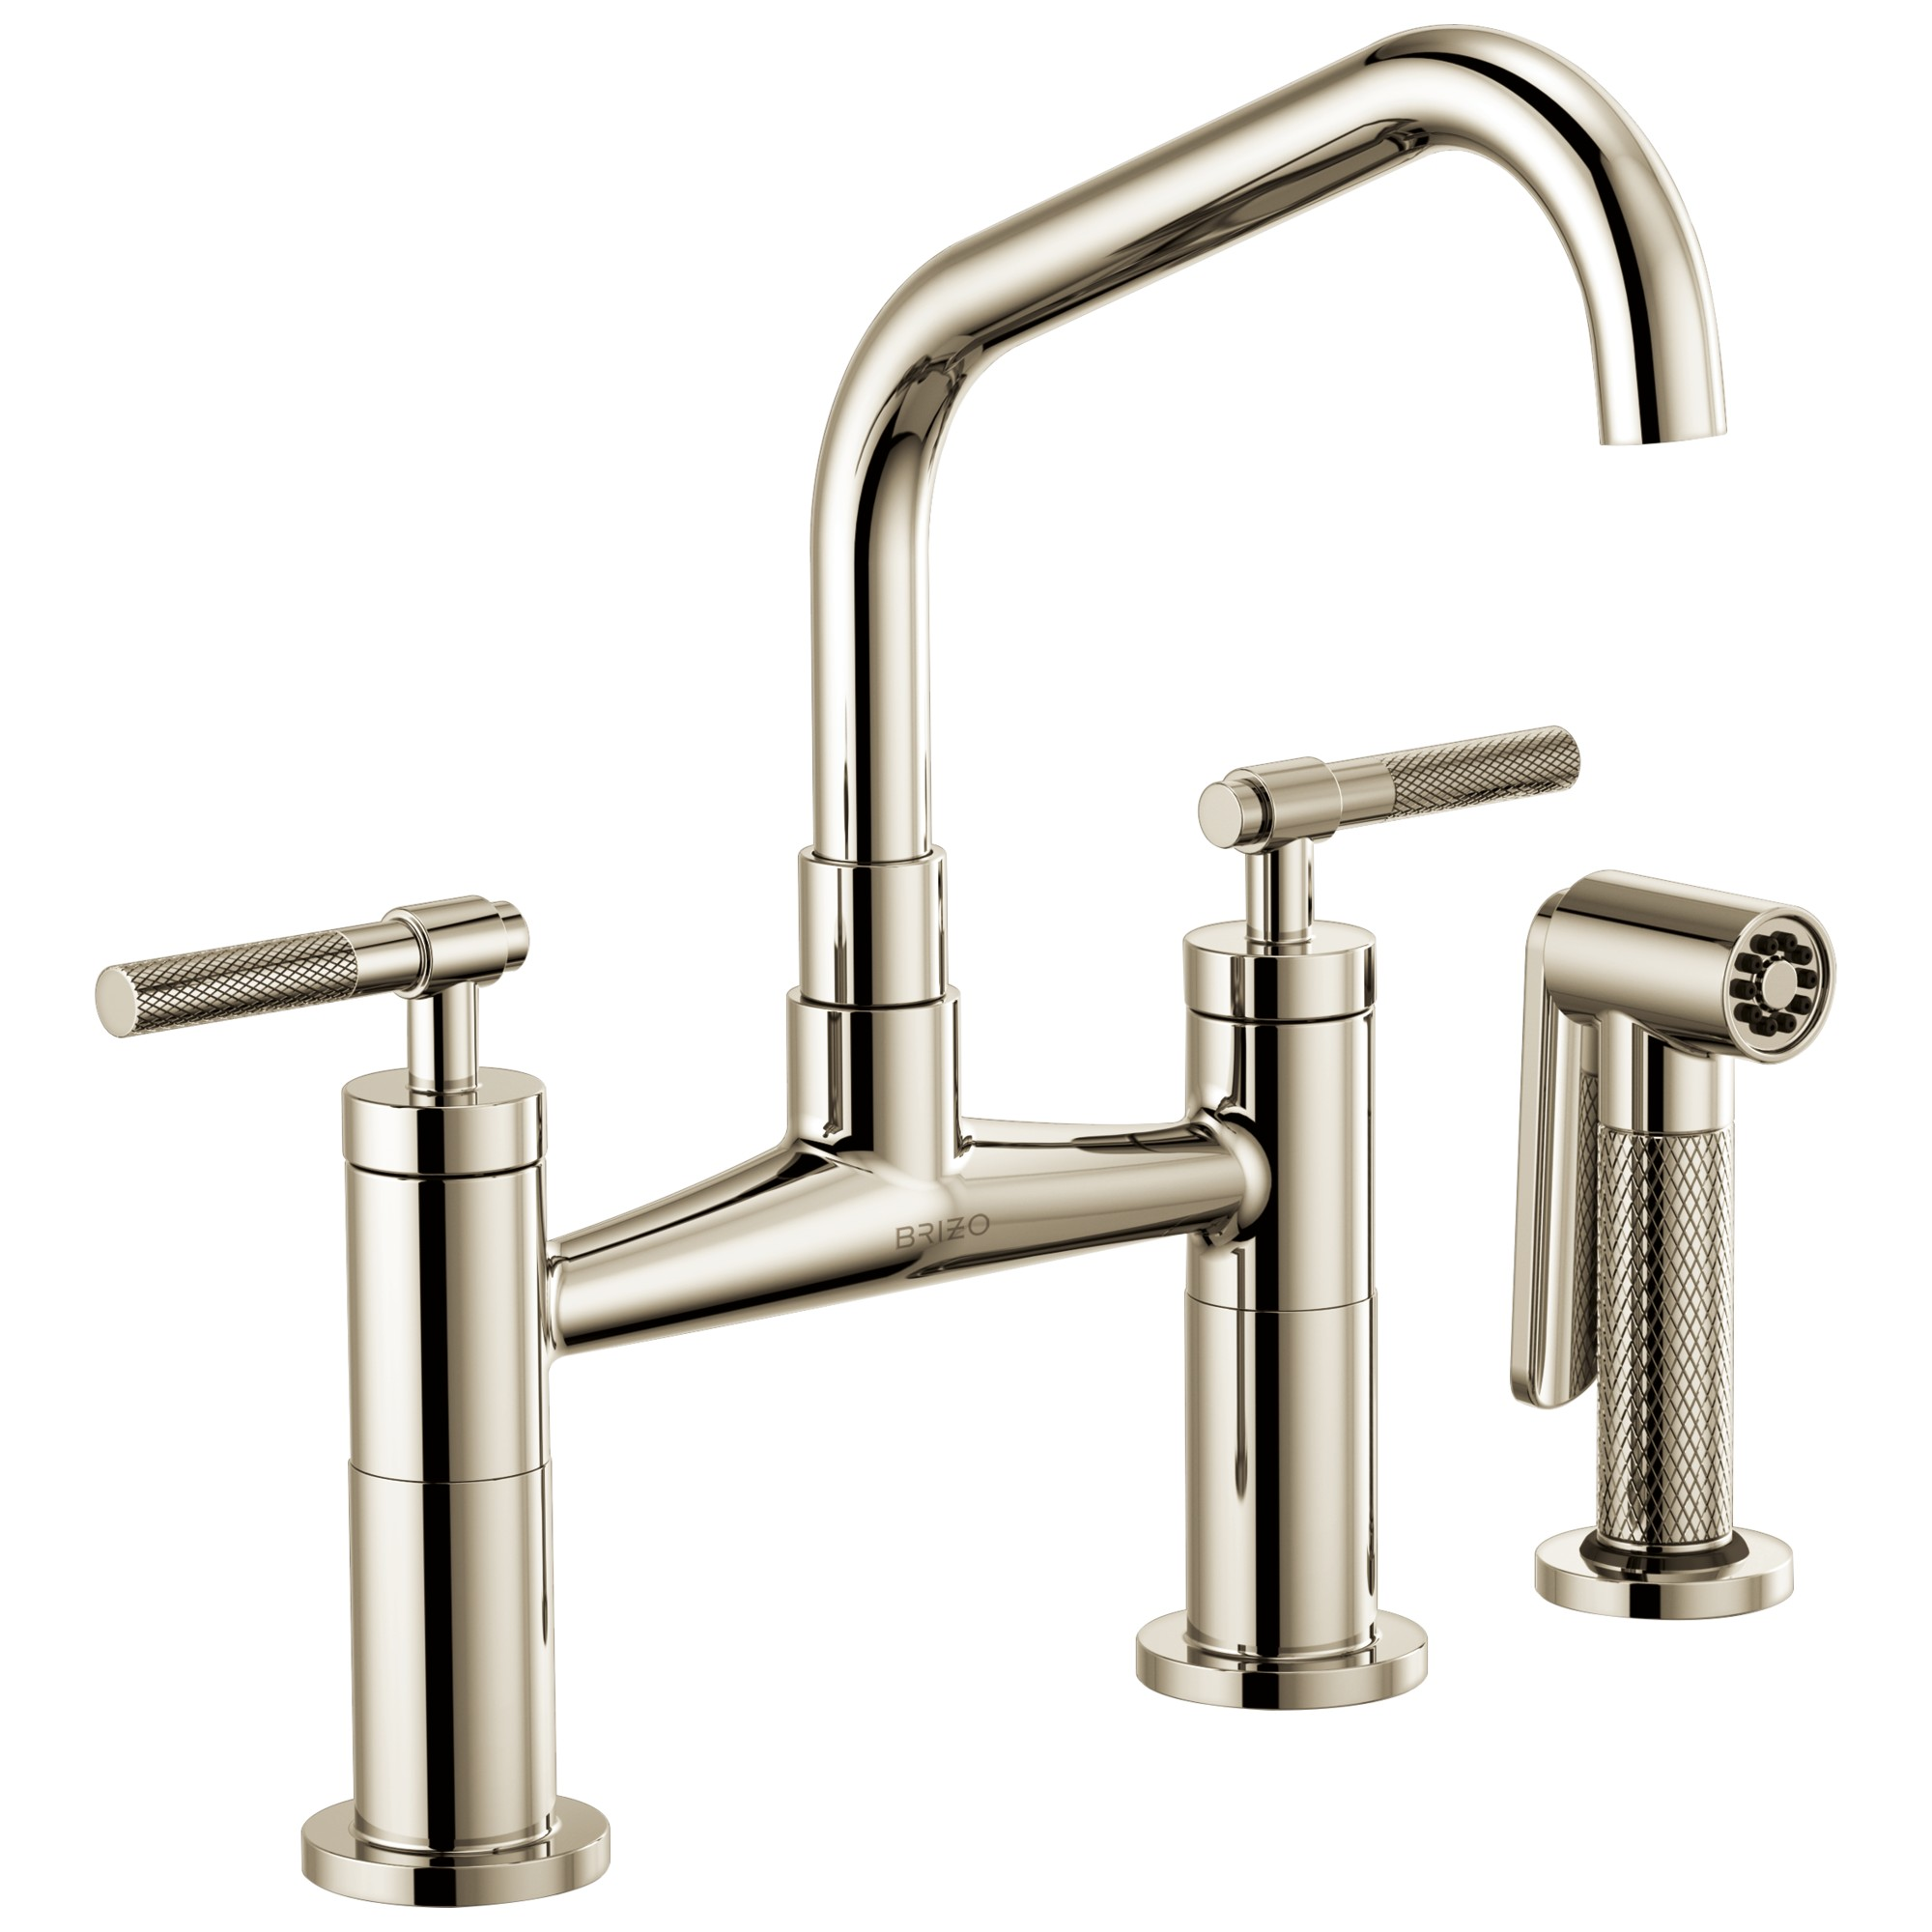 Brizo 62563LF-PN Litze Bridge Faucet with Angled Spout and Knurled Handle - Polished Nickel